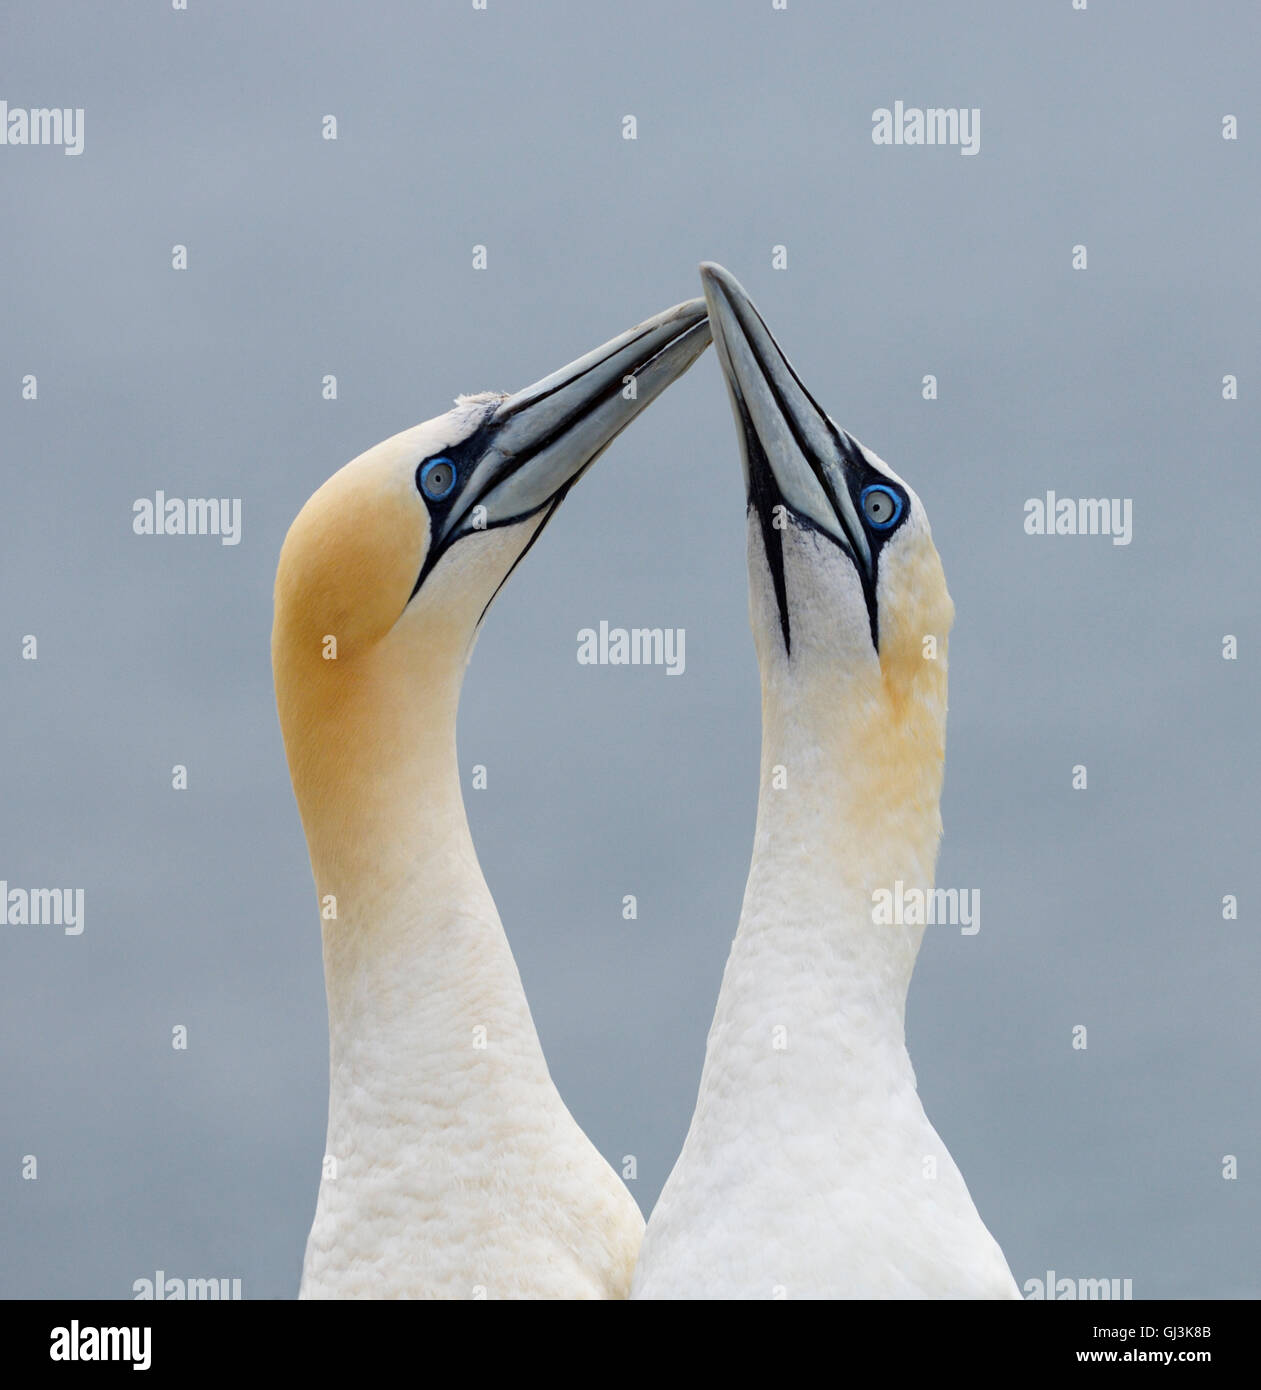 Northern Gannet (Morus bassanus) - UK - Stock Image